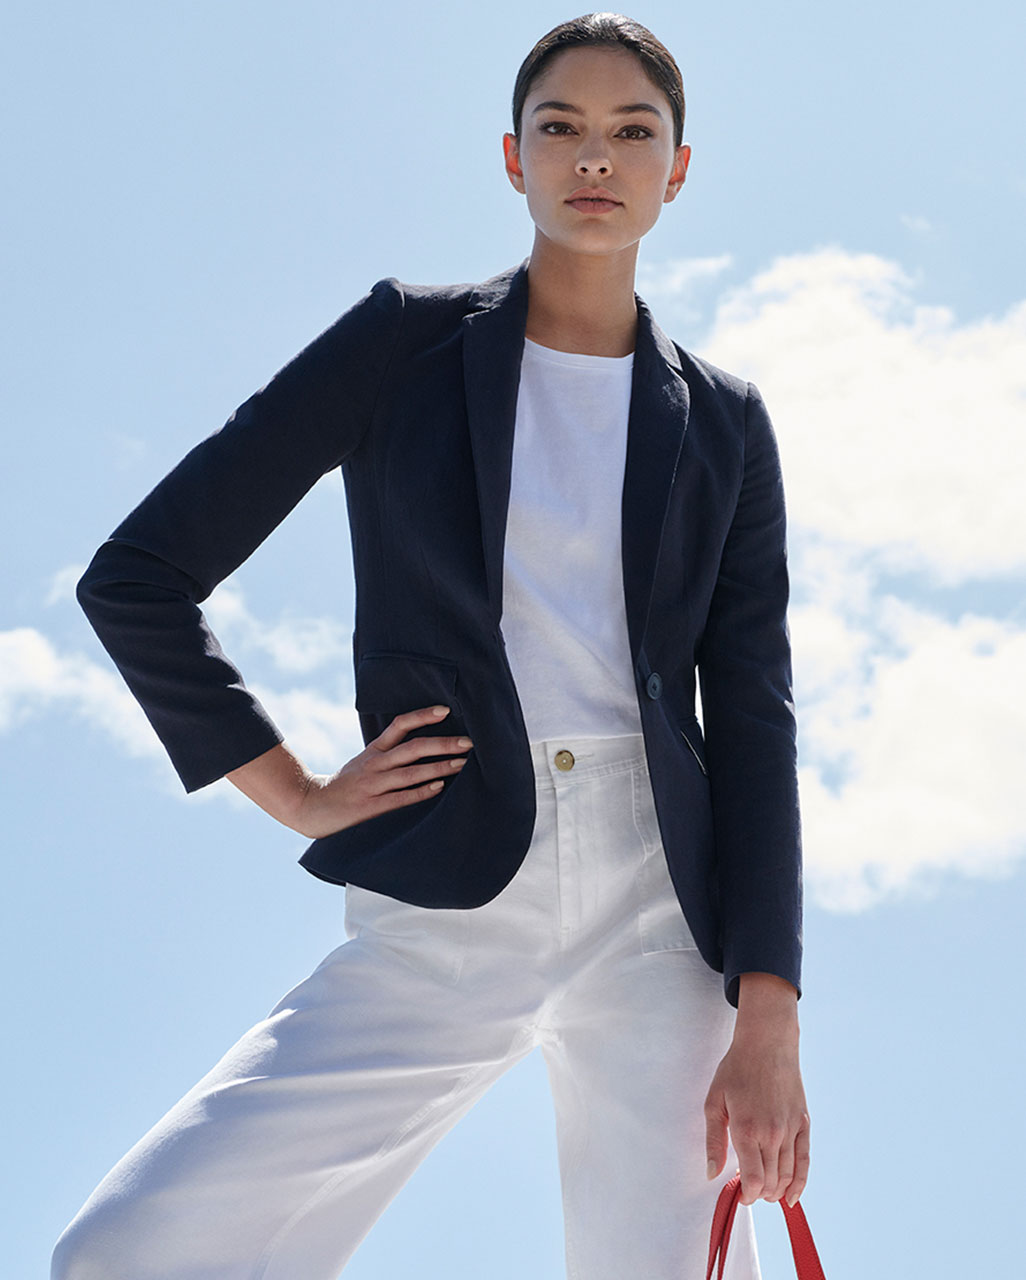 Navy linen jacket, white top, white linen trousers